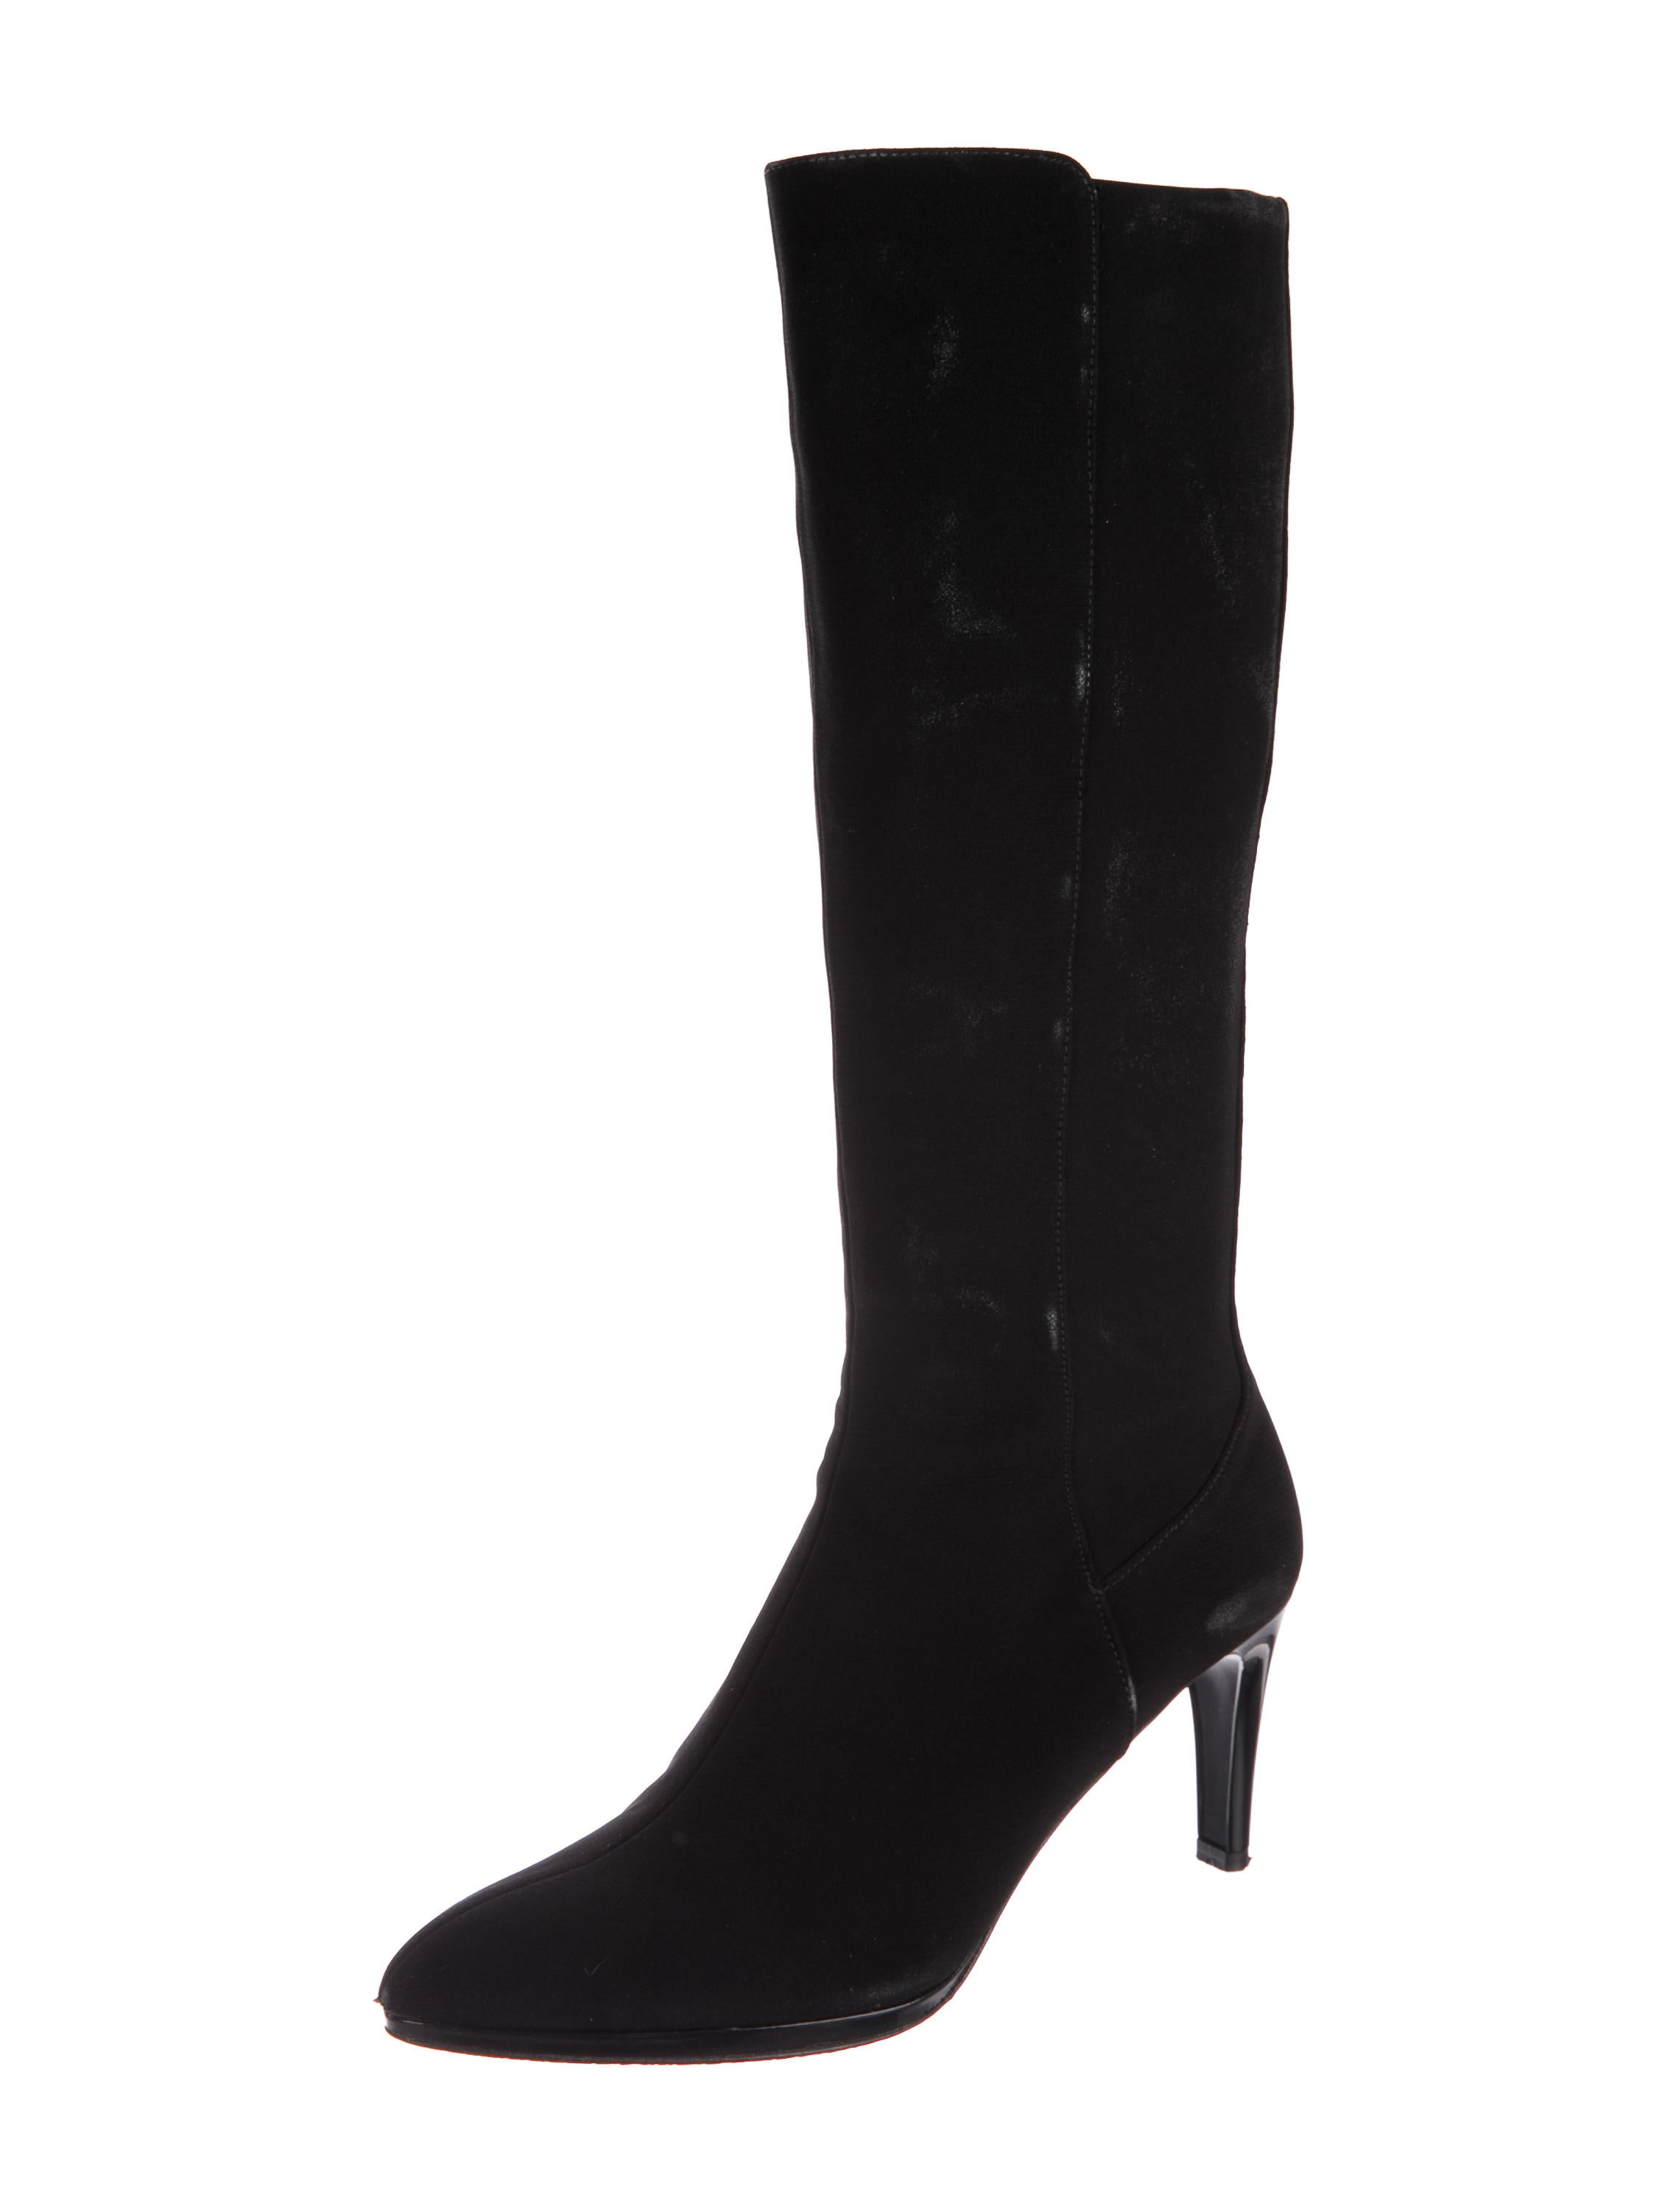 Stuart Weitzman Canvas Knee-High Boots outlet from china buy cheap get to buy best place for sale buy cheap 2015 dkGsnB6PL